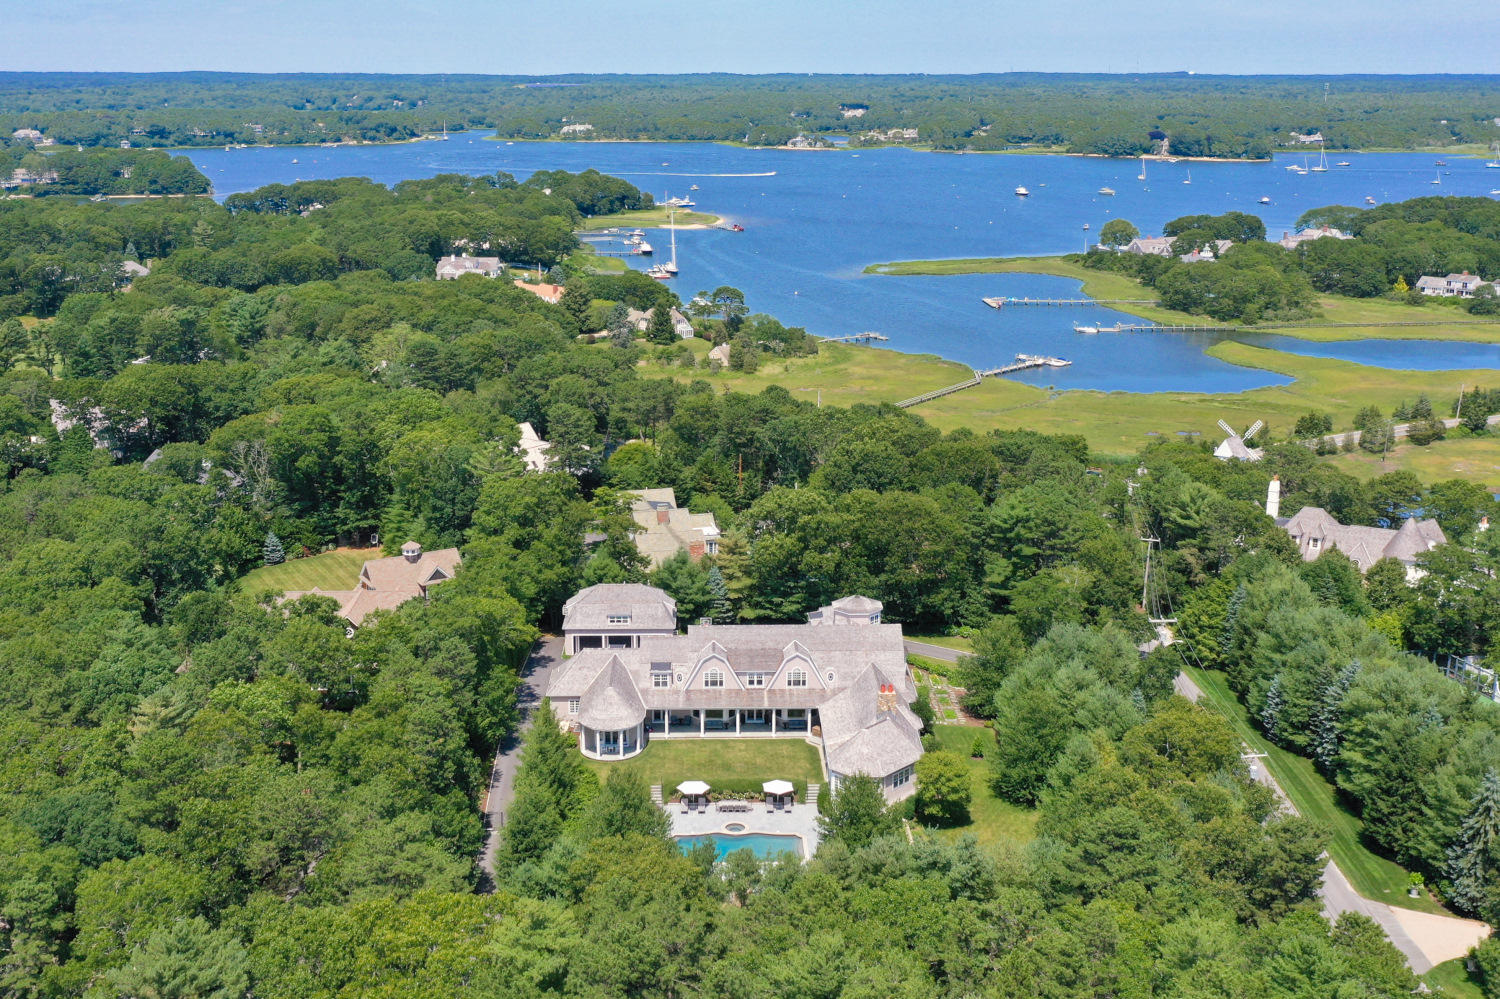 48 Oyster Way, Osterville MA, 02655 details